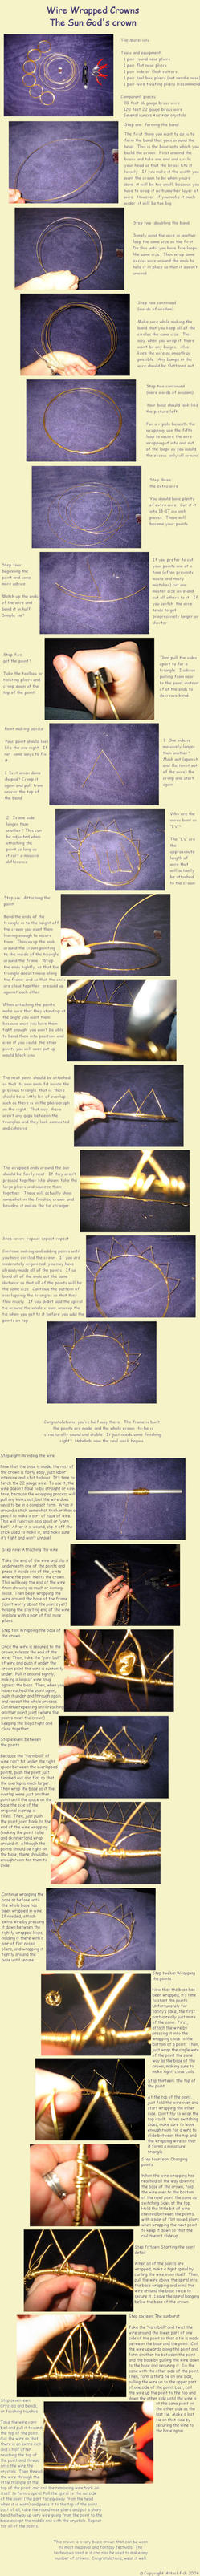 Wire-Wrapped Crown Making by Attackfish